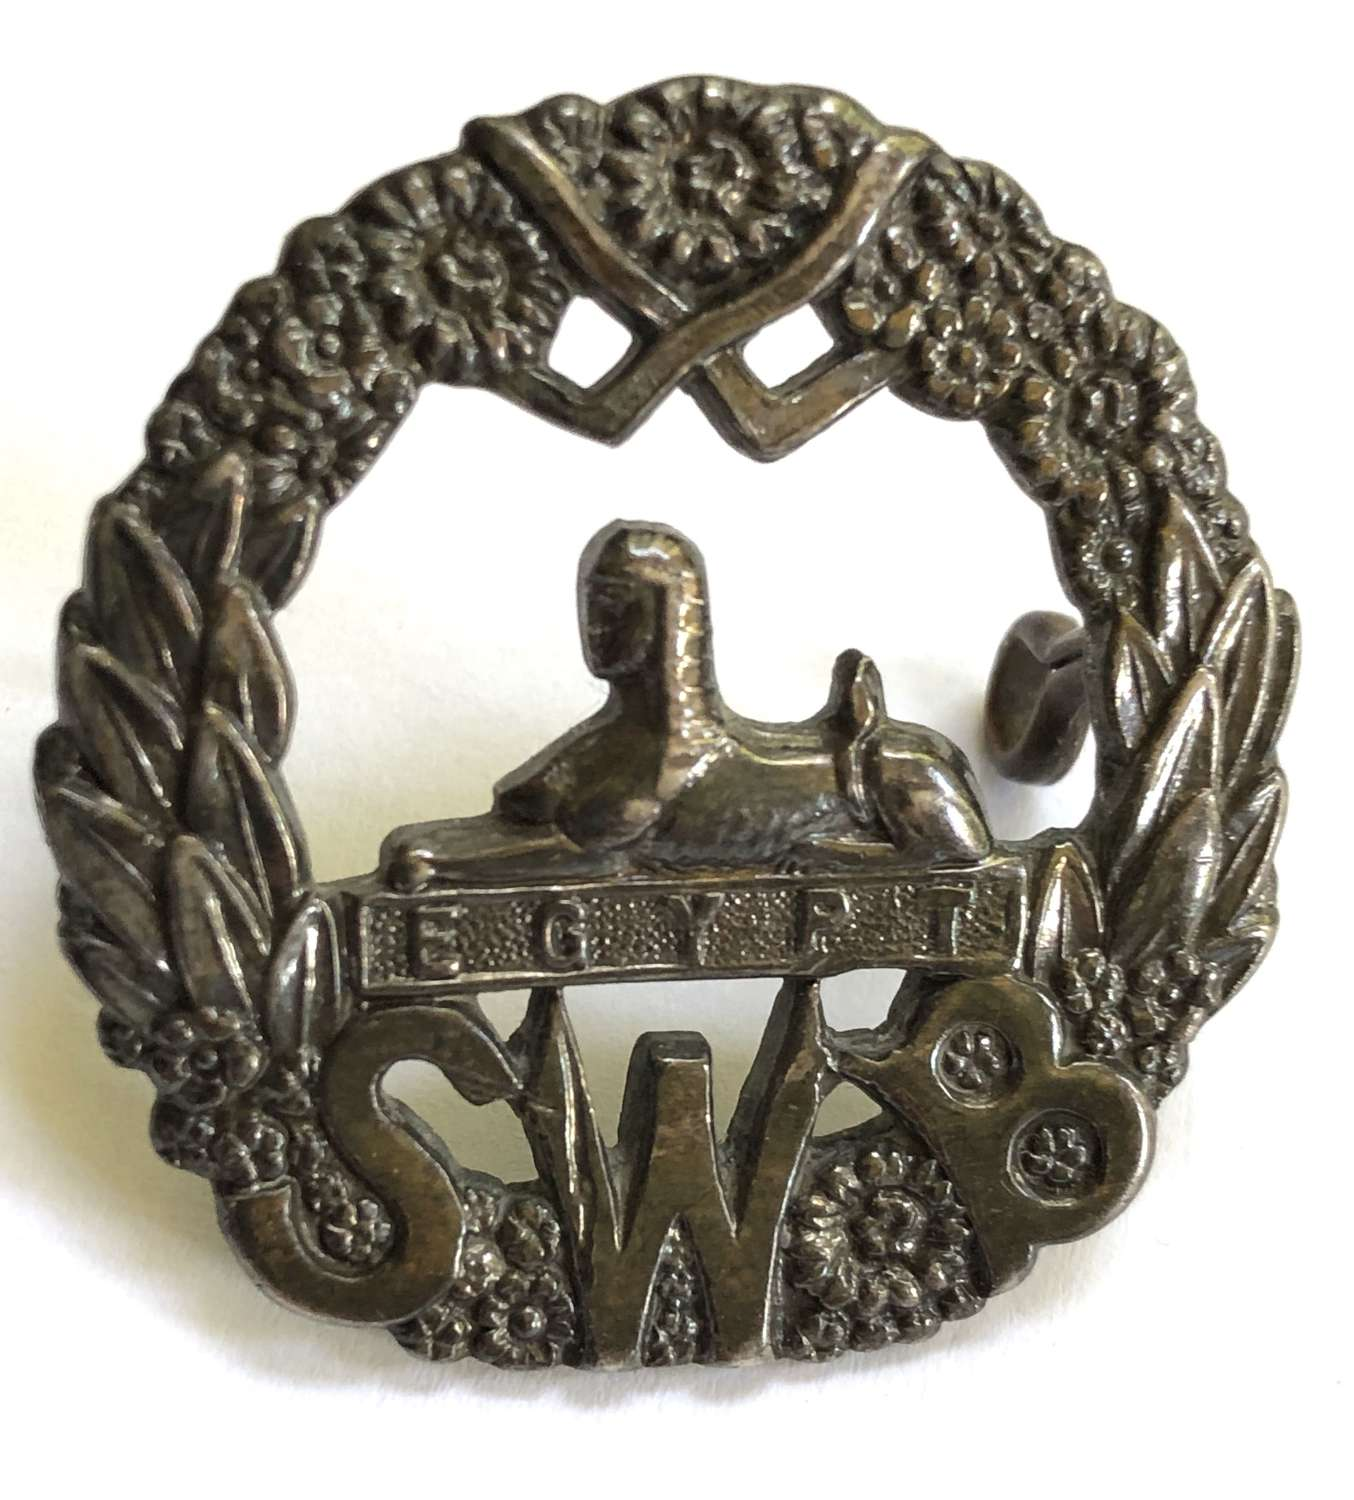 South Wales Borderers Officer's unmarked silver cap badge